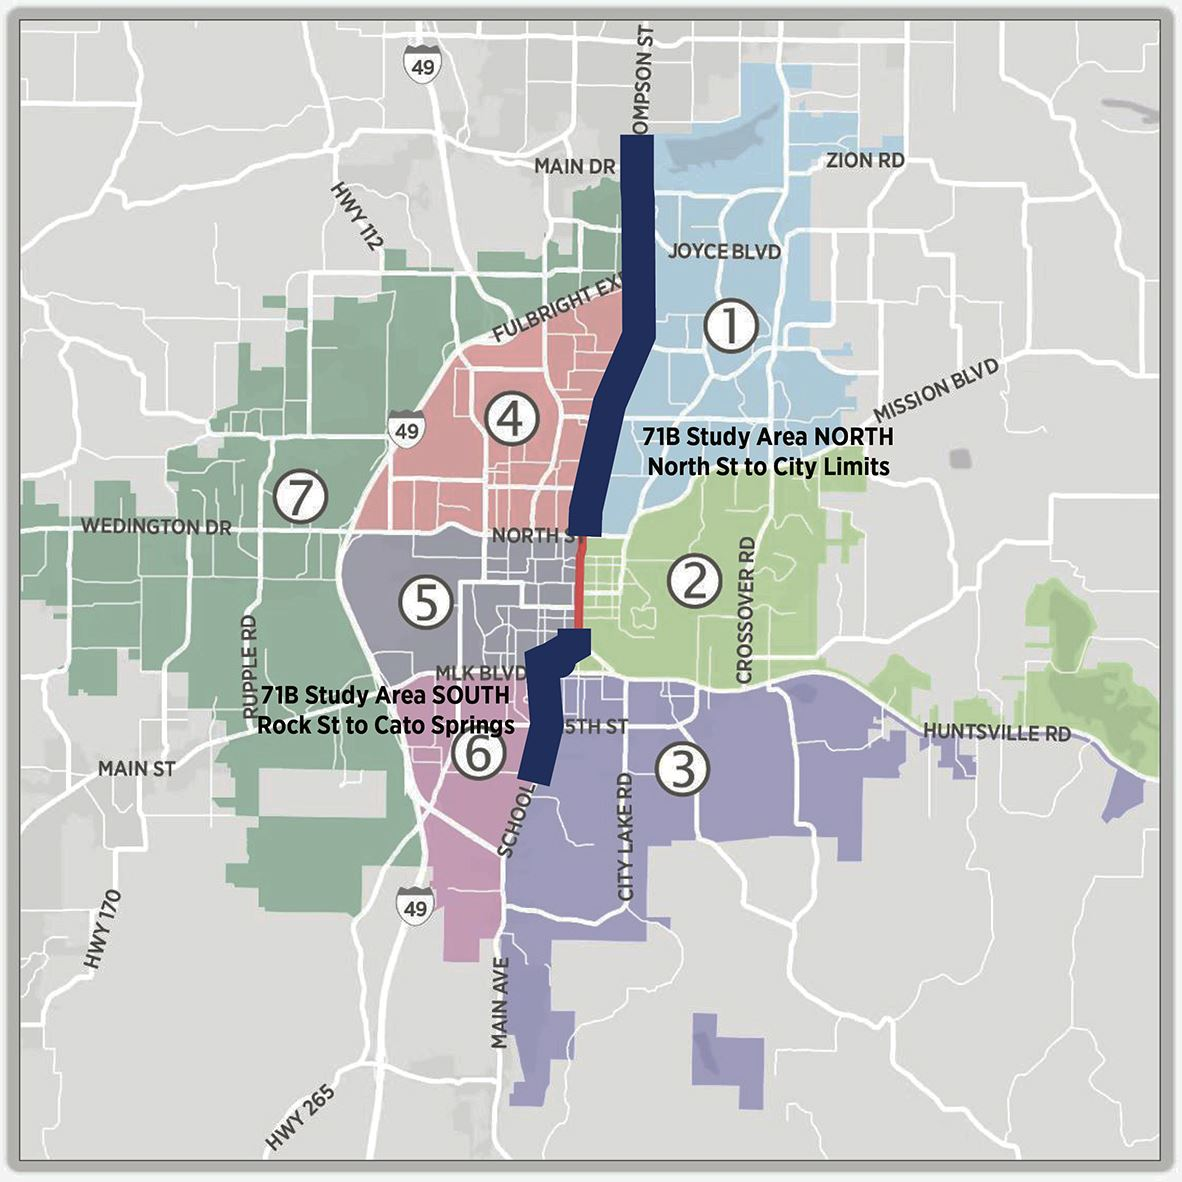 71B Corridor Plan Study Area Map